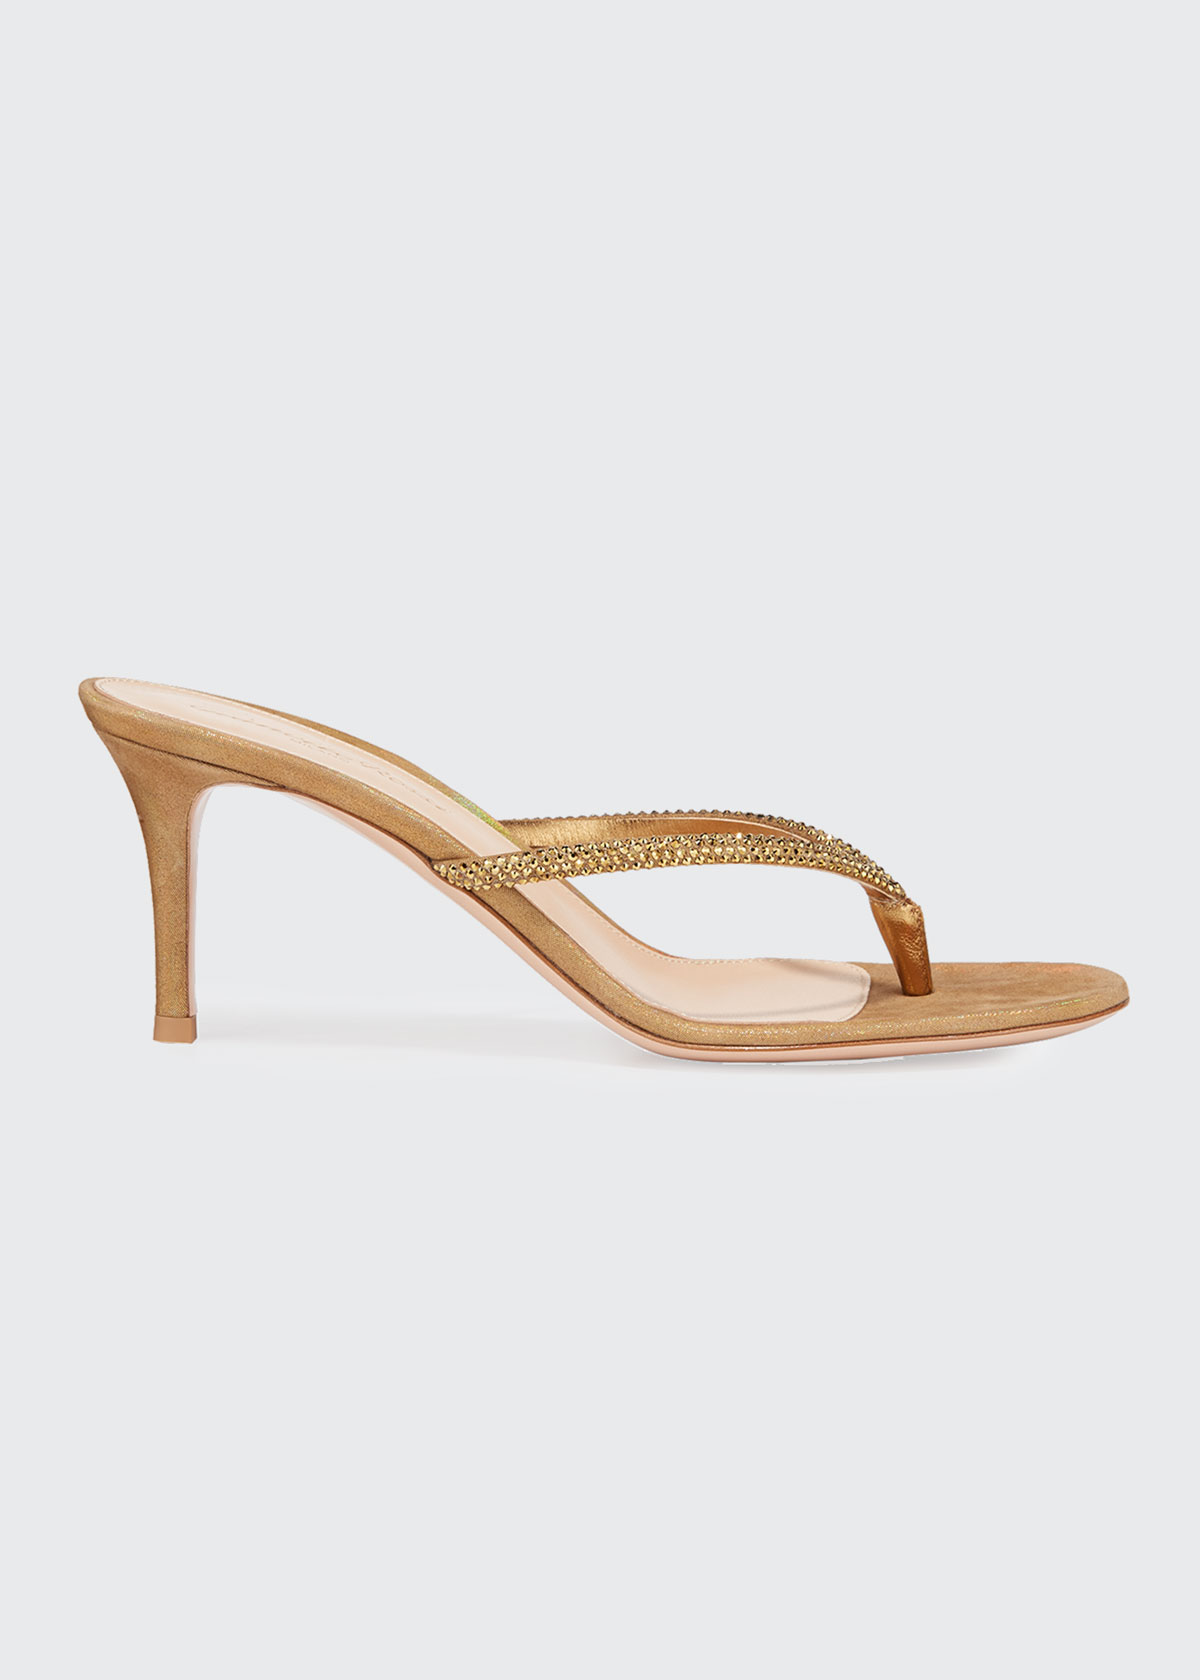 GIANVITO ROSSI THONG STRASS SLIDE SANDALS